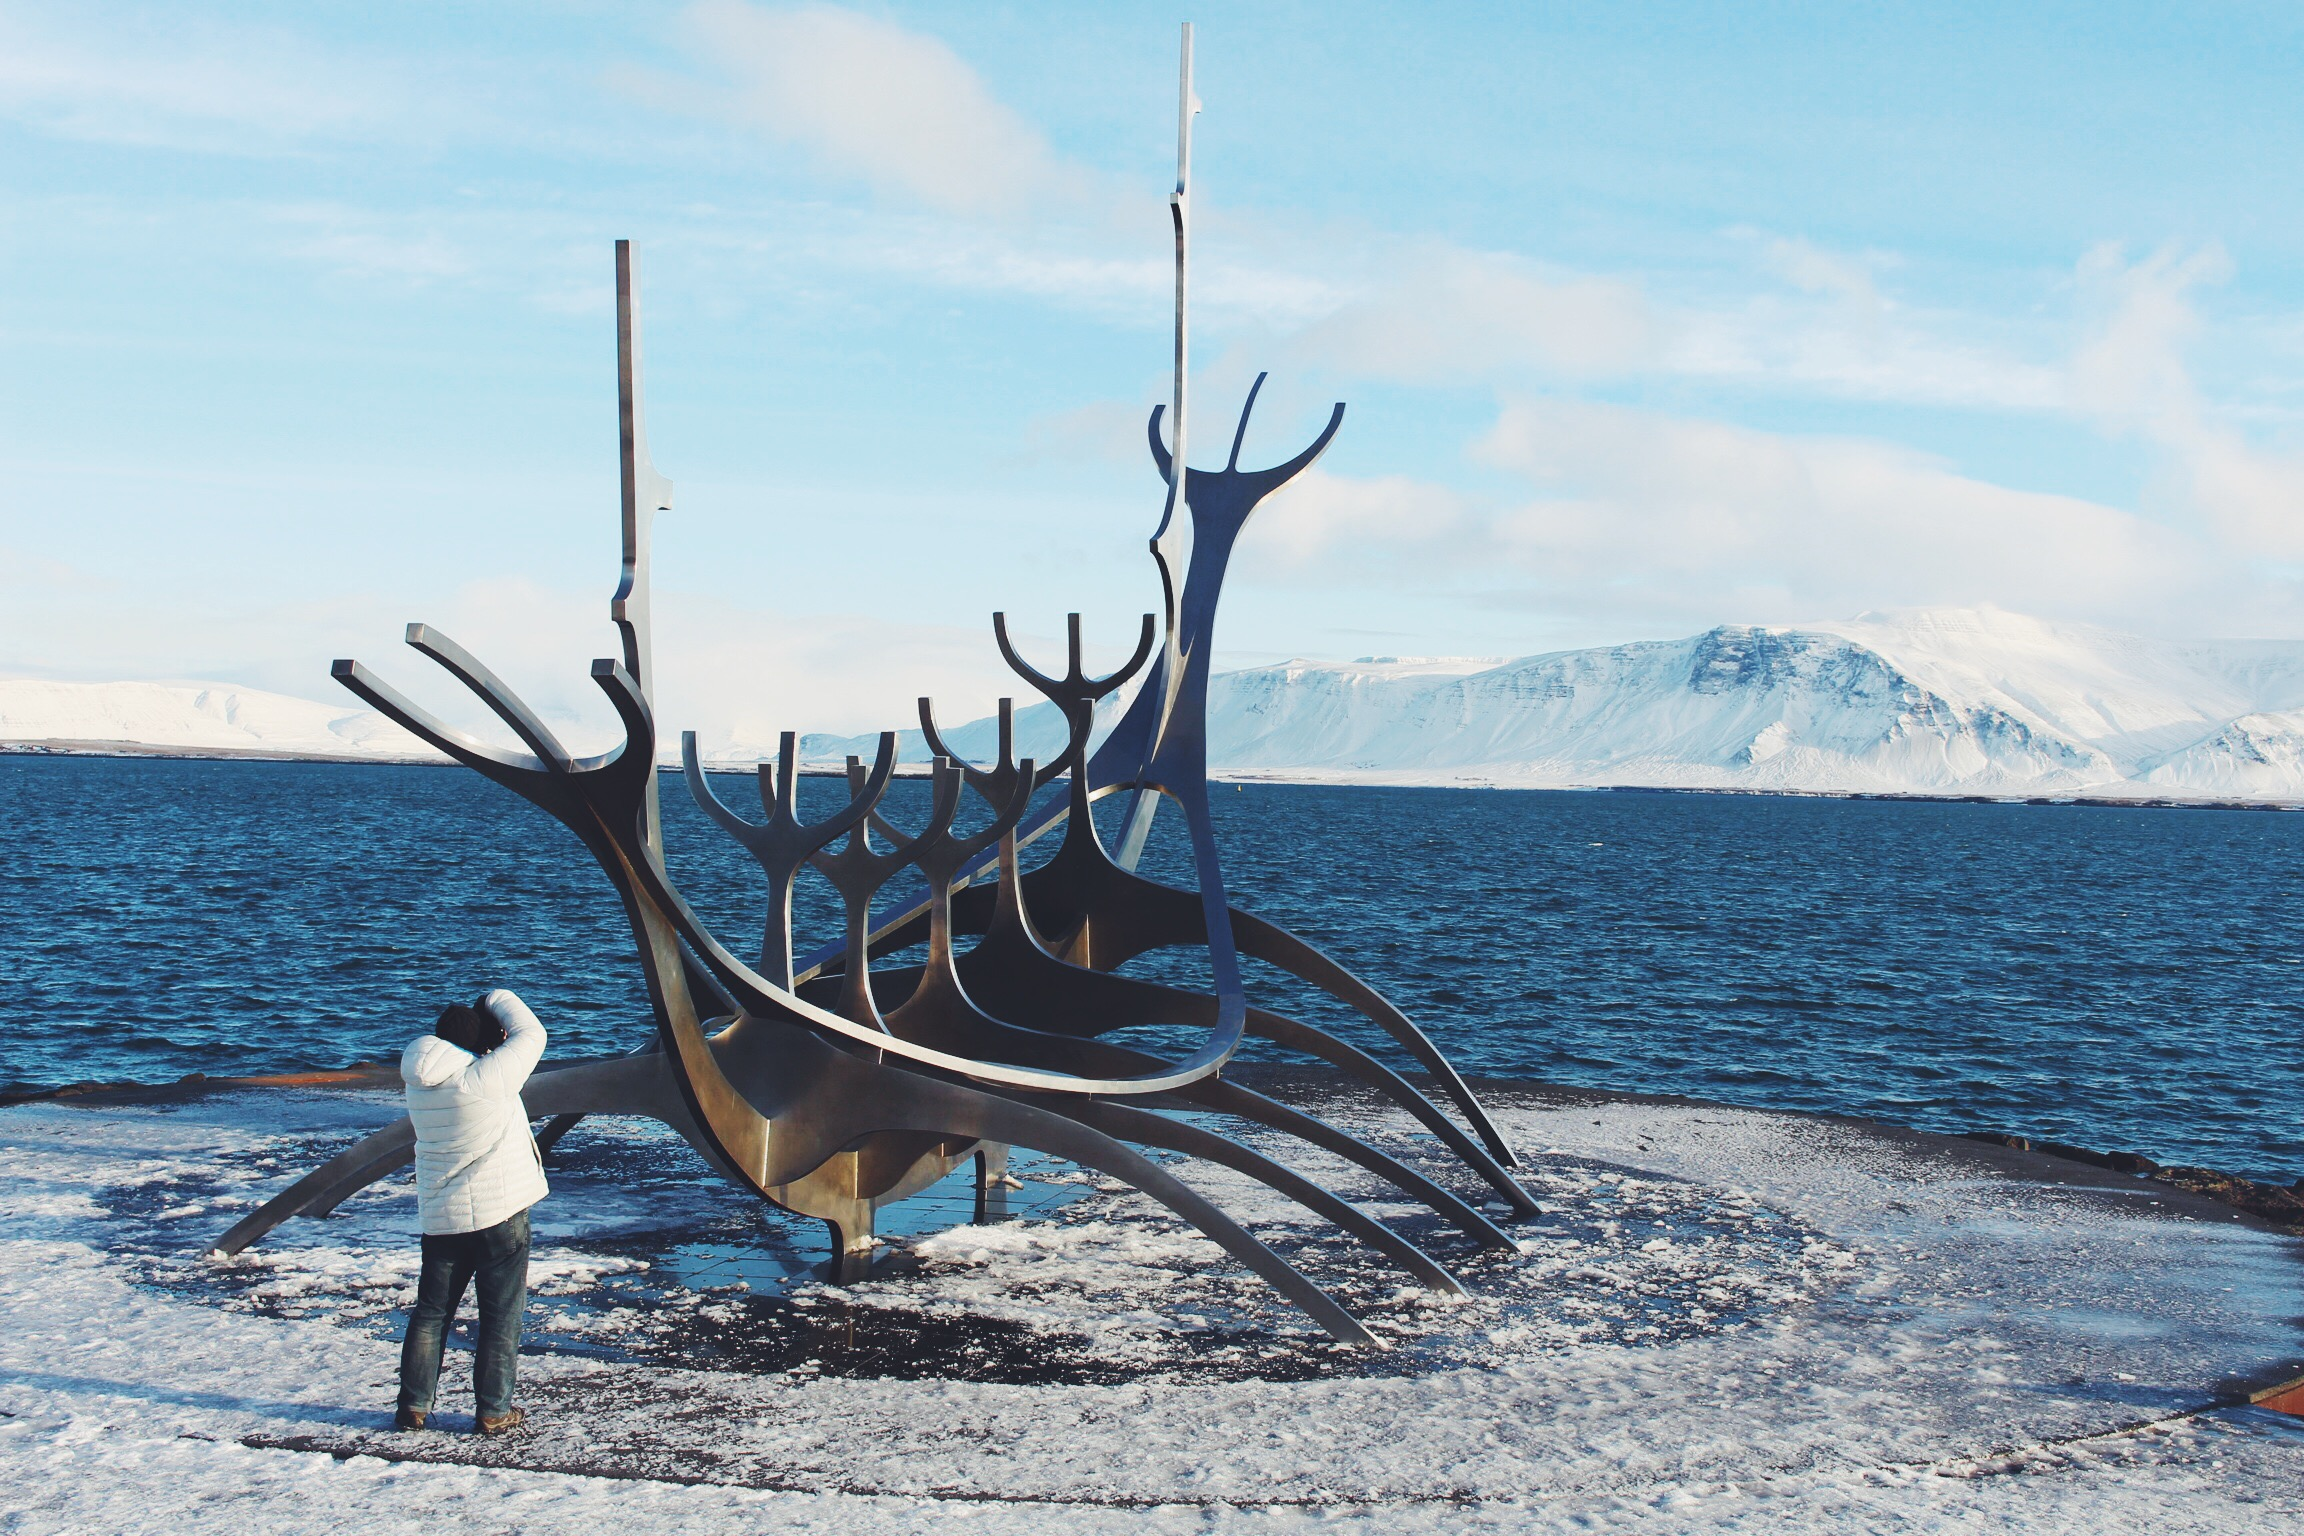 The Sun Voyager. Photo: Connected to India